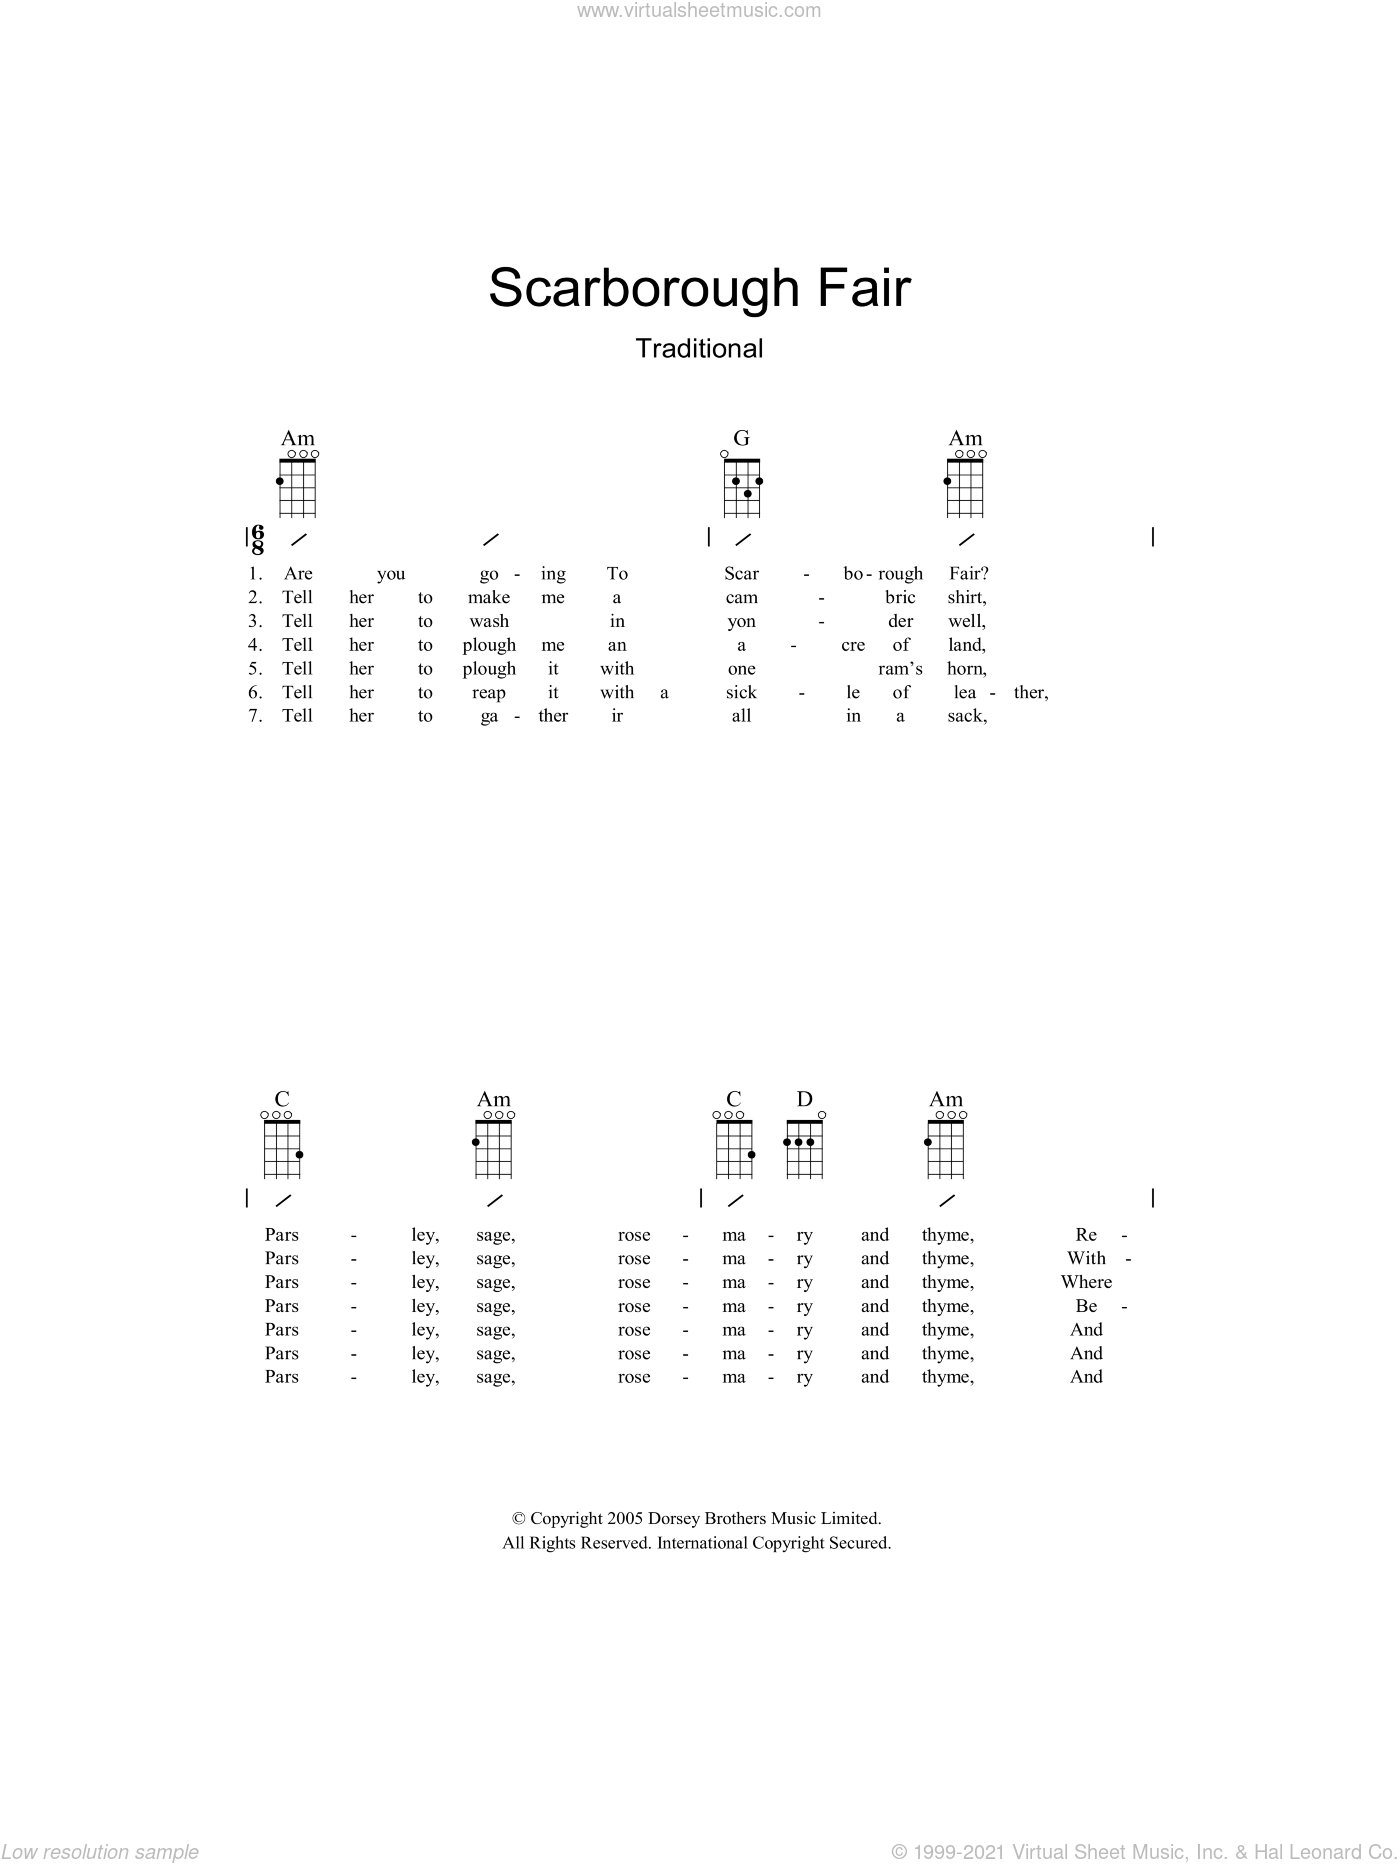 Scarborough Fair sheet music for guitar (chords)  and Traditional English Ballad, intermediate skill level